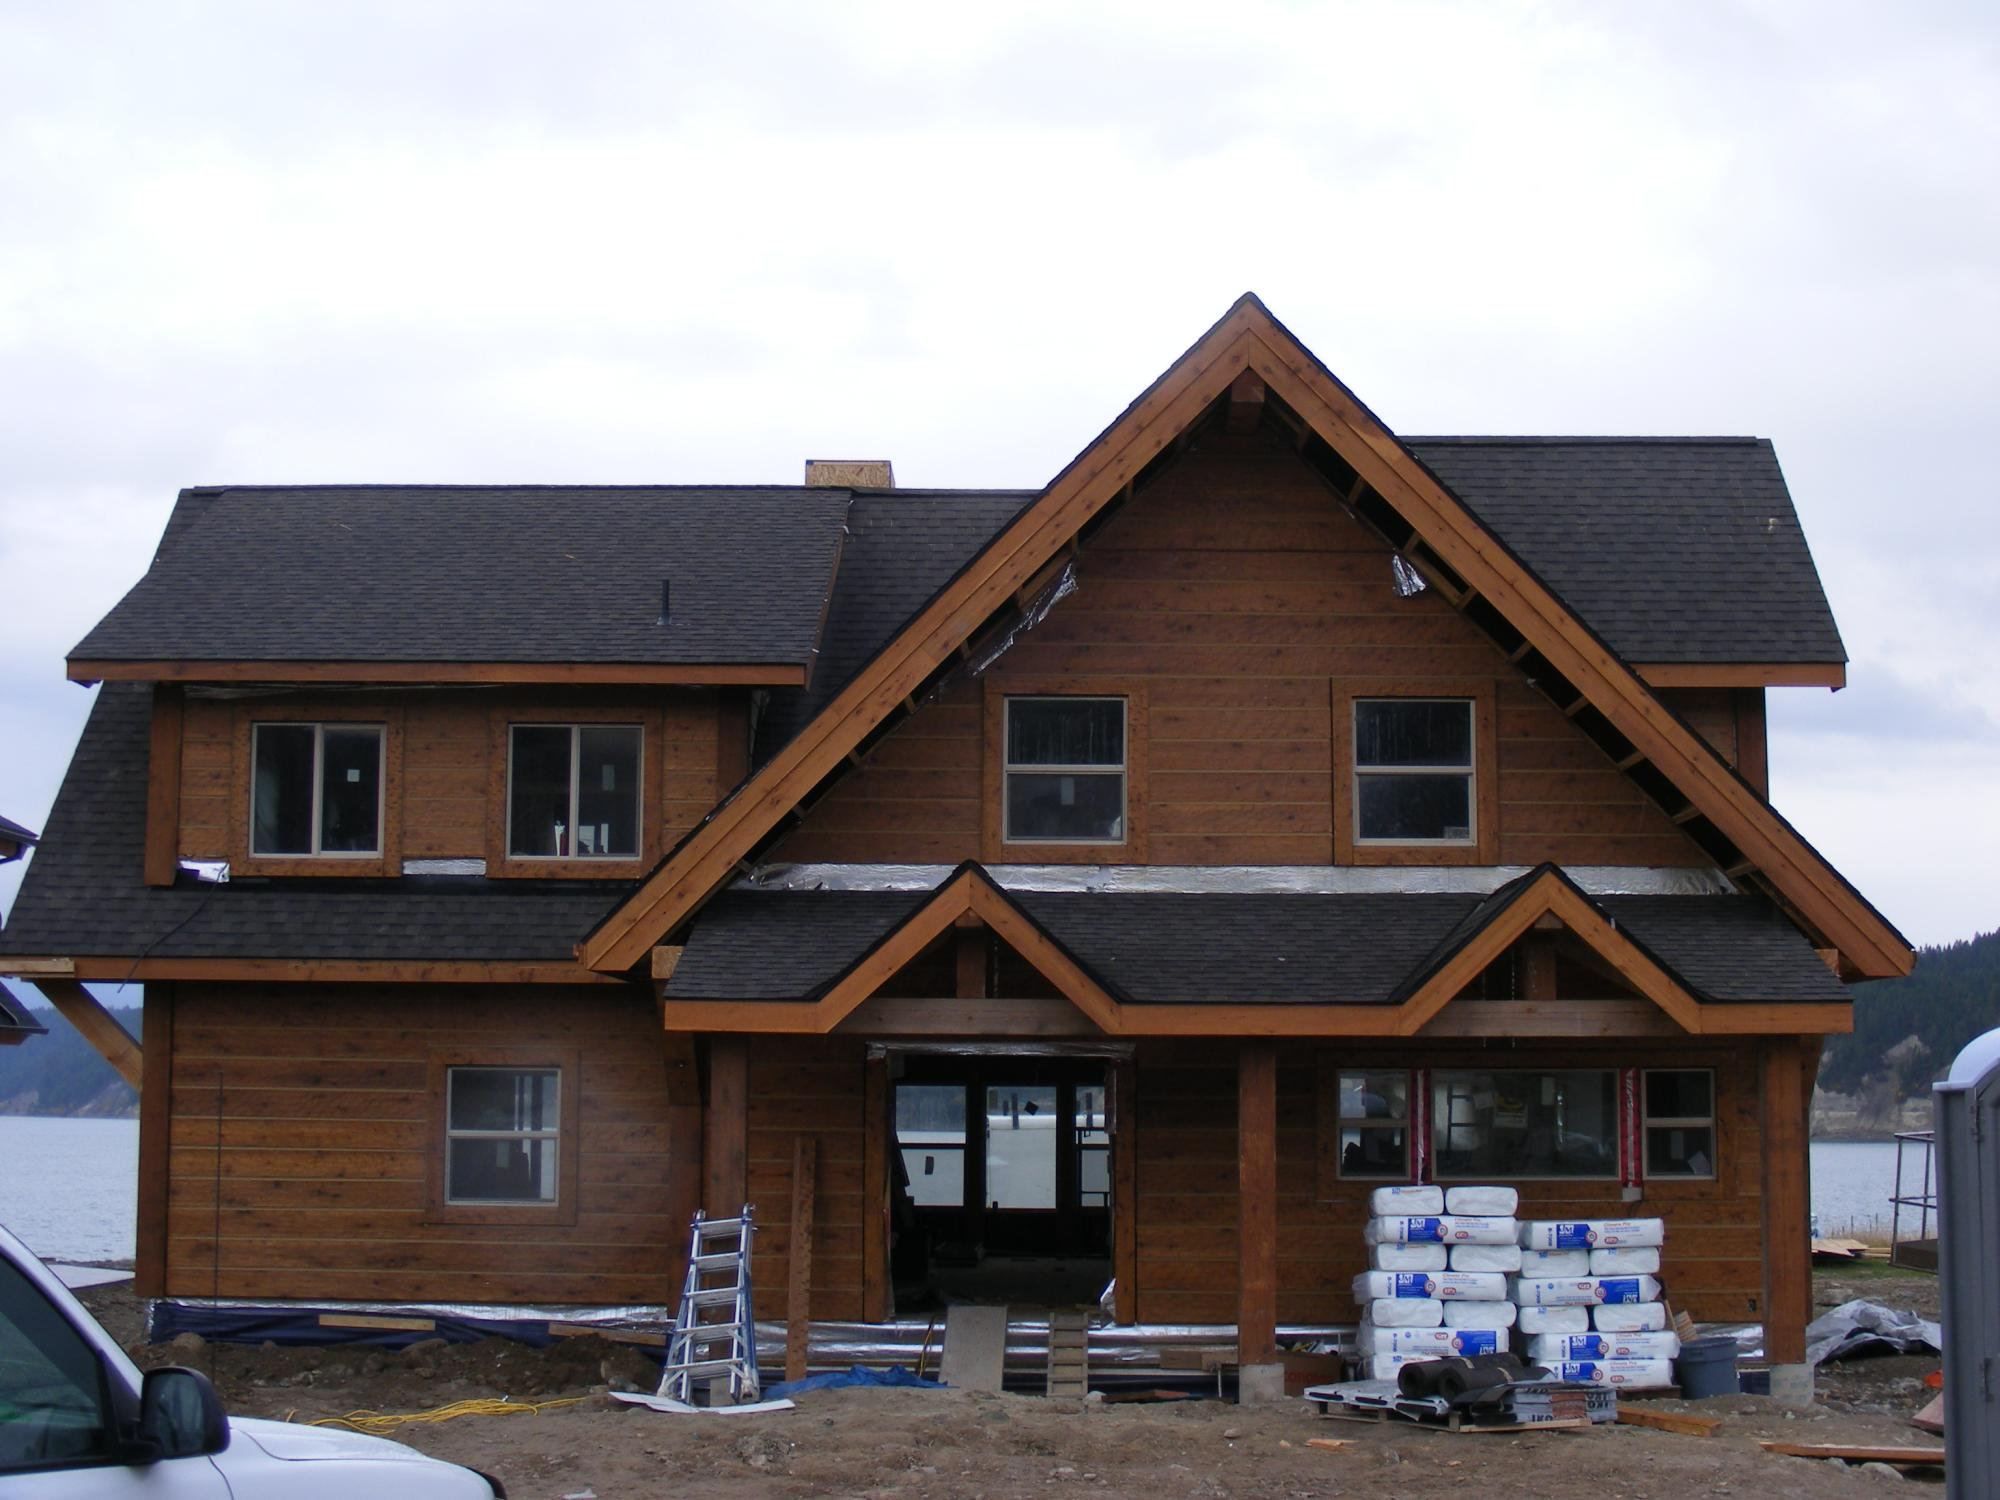 New Construction - Koocanusa & Roofing Repairs Roofing Contractor Roof Installation - Cranbrook BC memphite.com